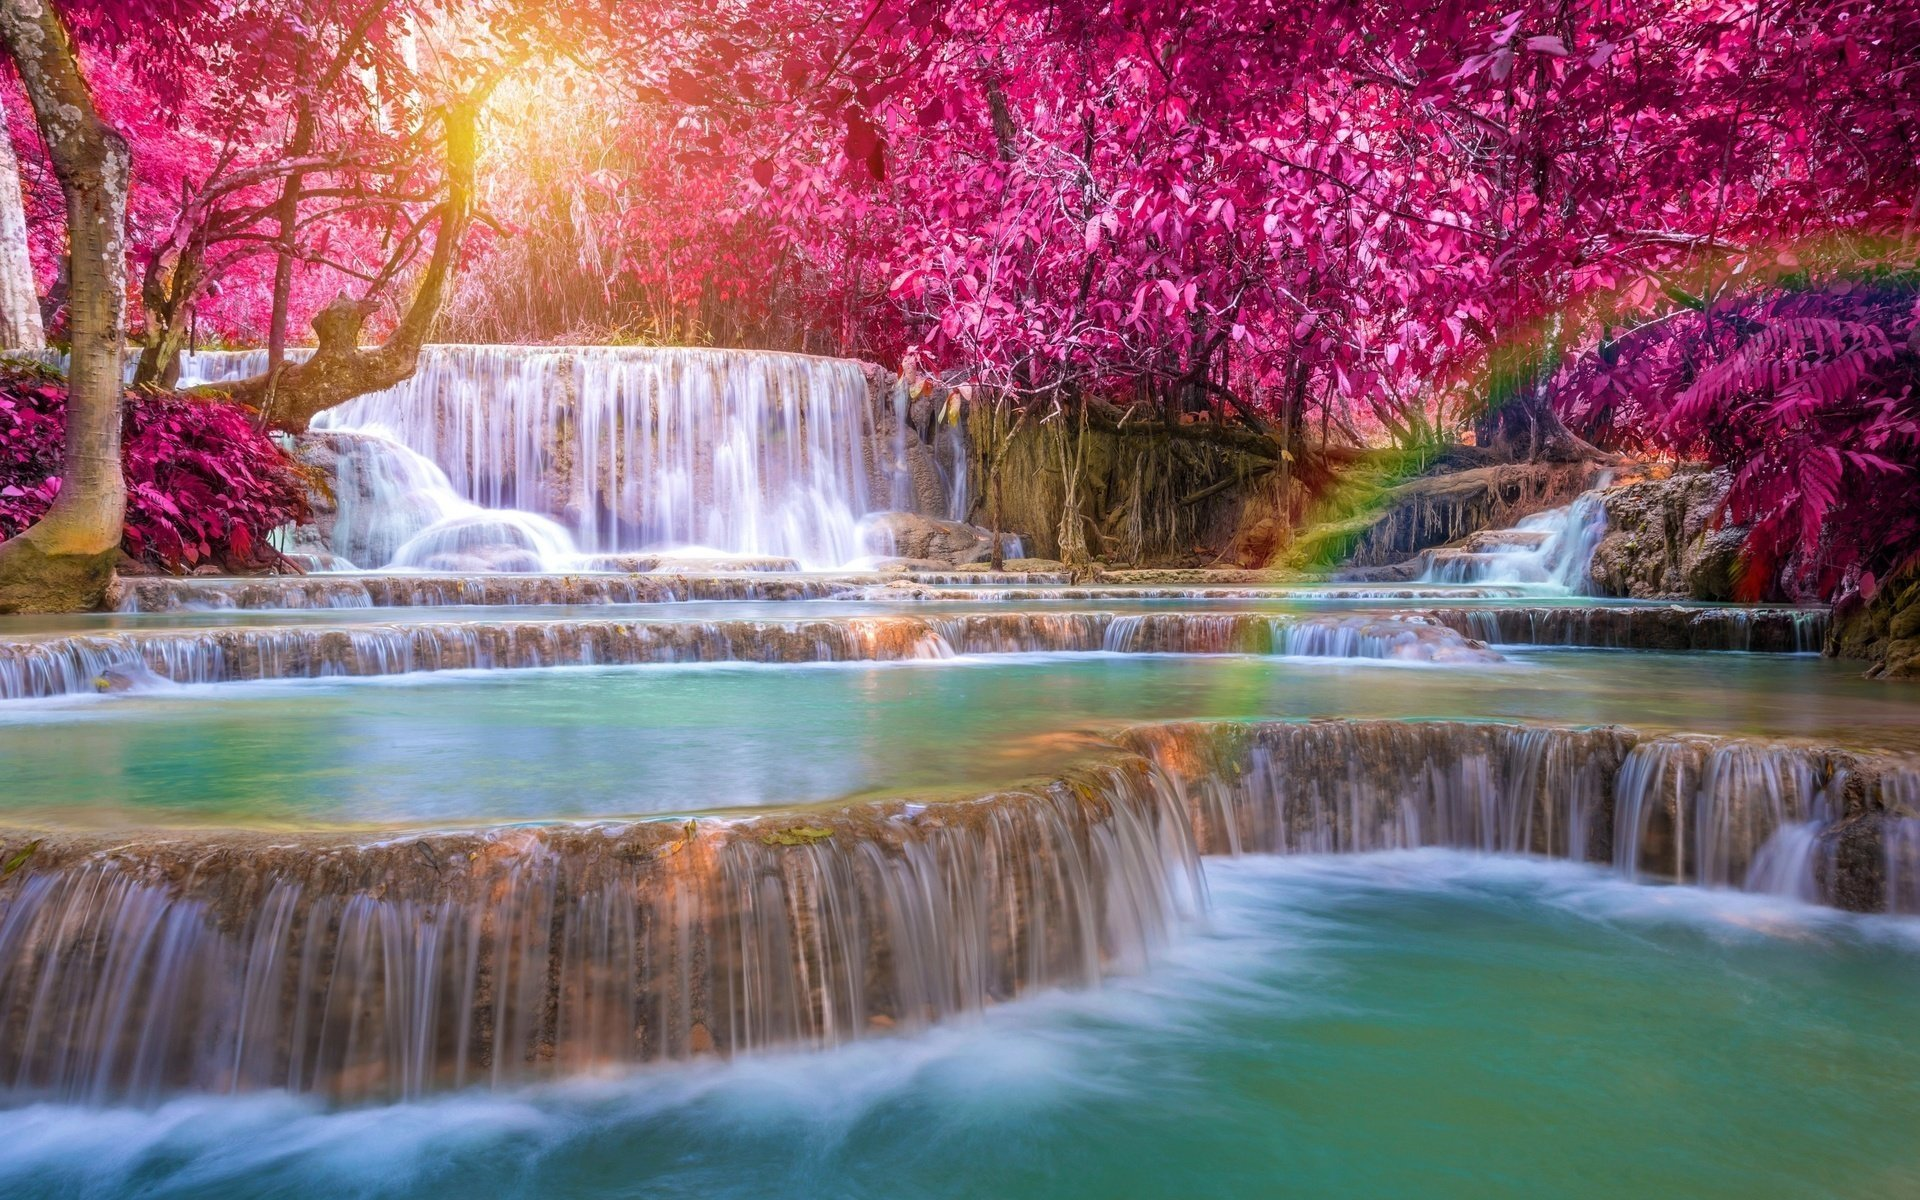 Kuang Si Falls Hd Wallpaper 1920 Wasserfall Hd Wallpaper Hintergrund 1920x1200 Id